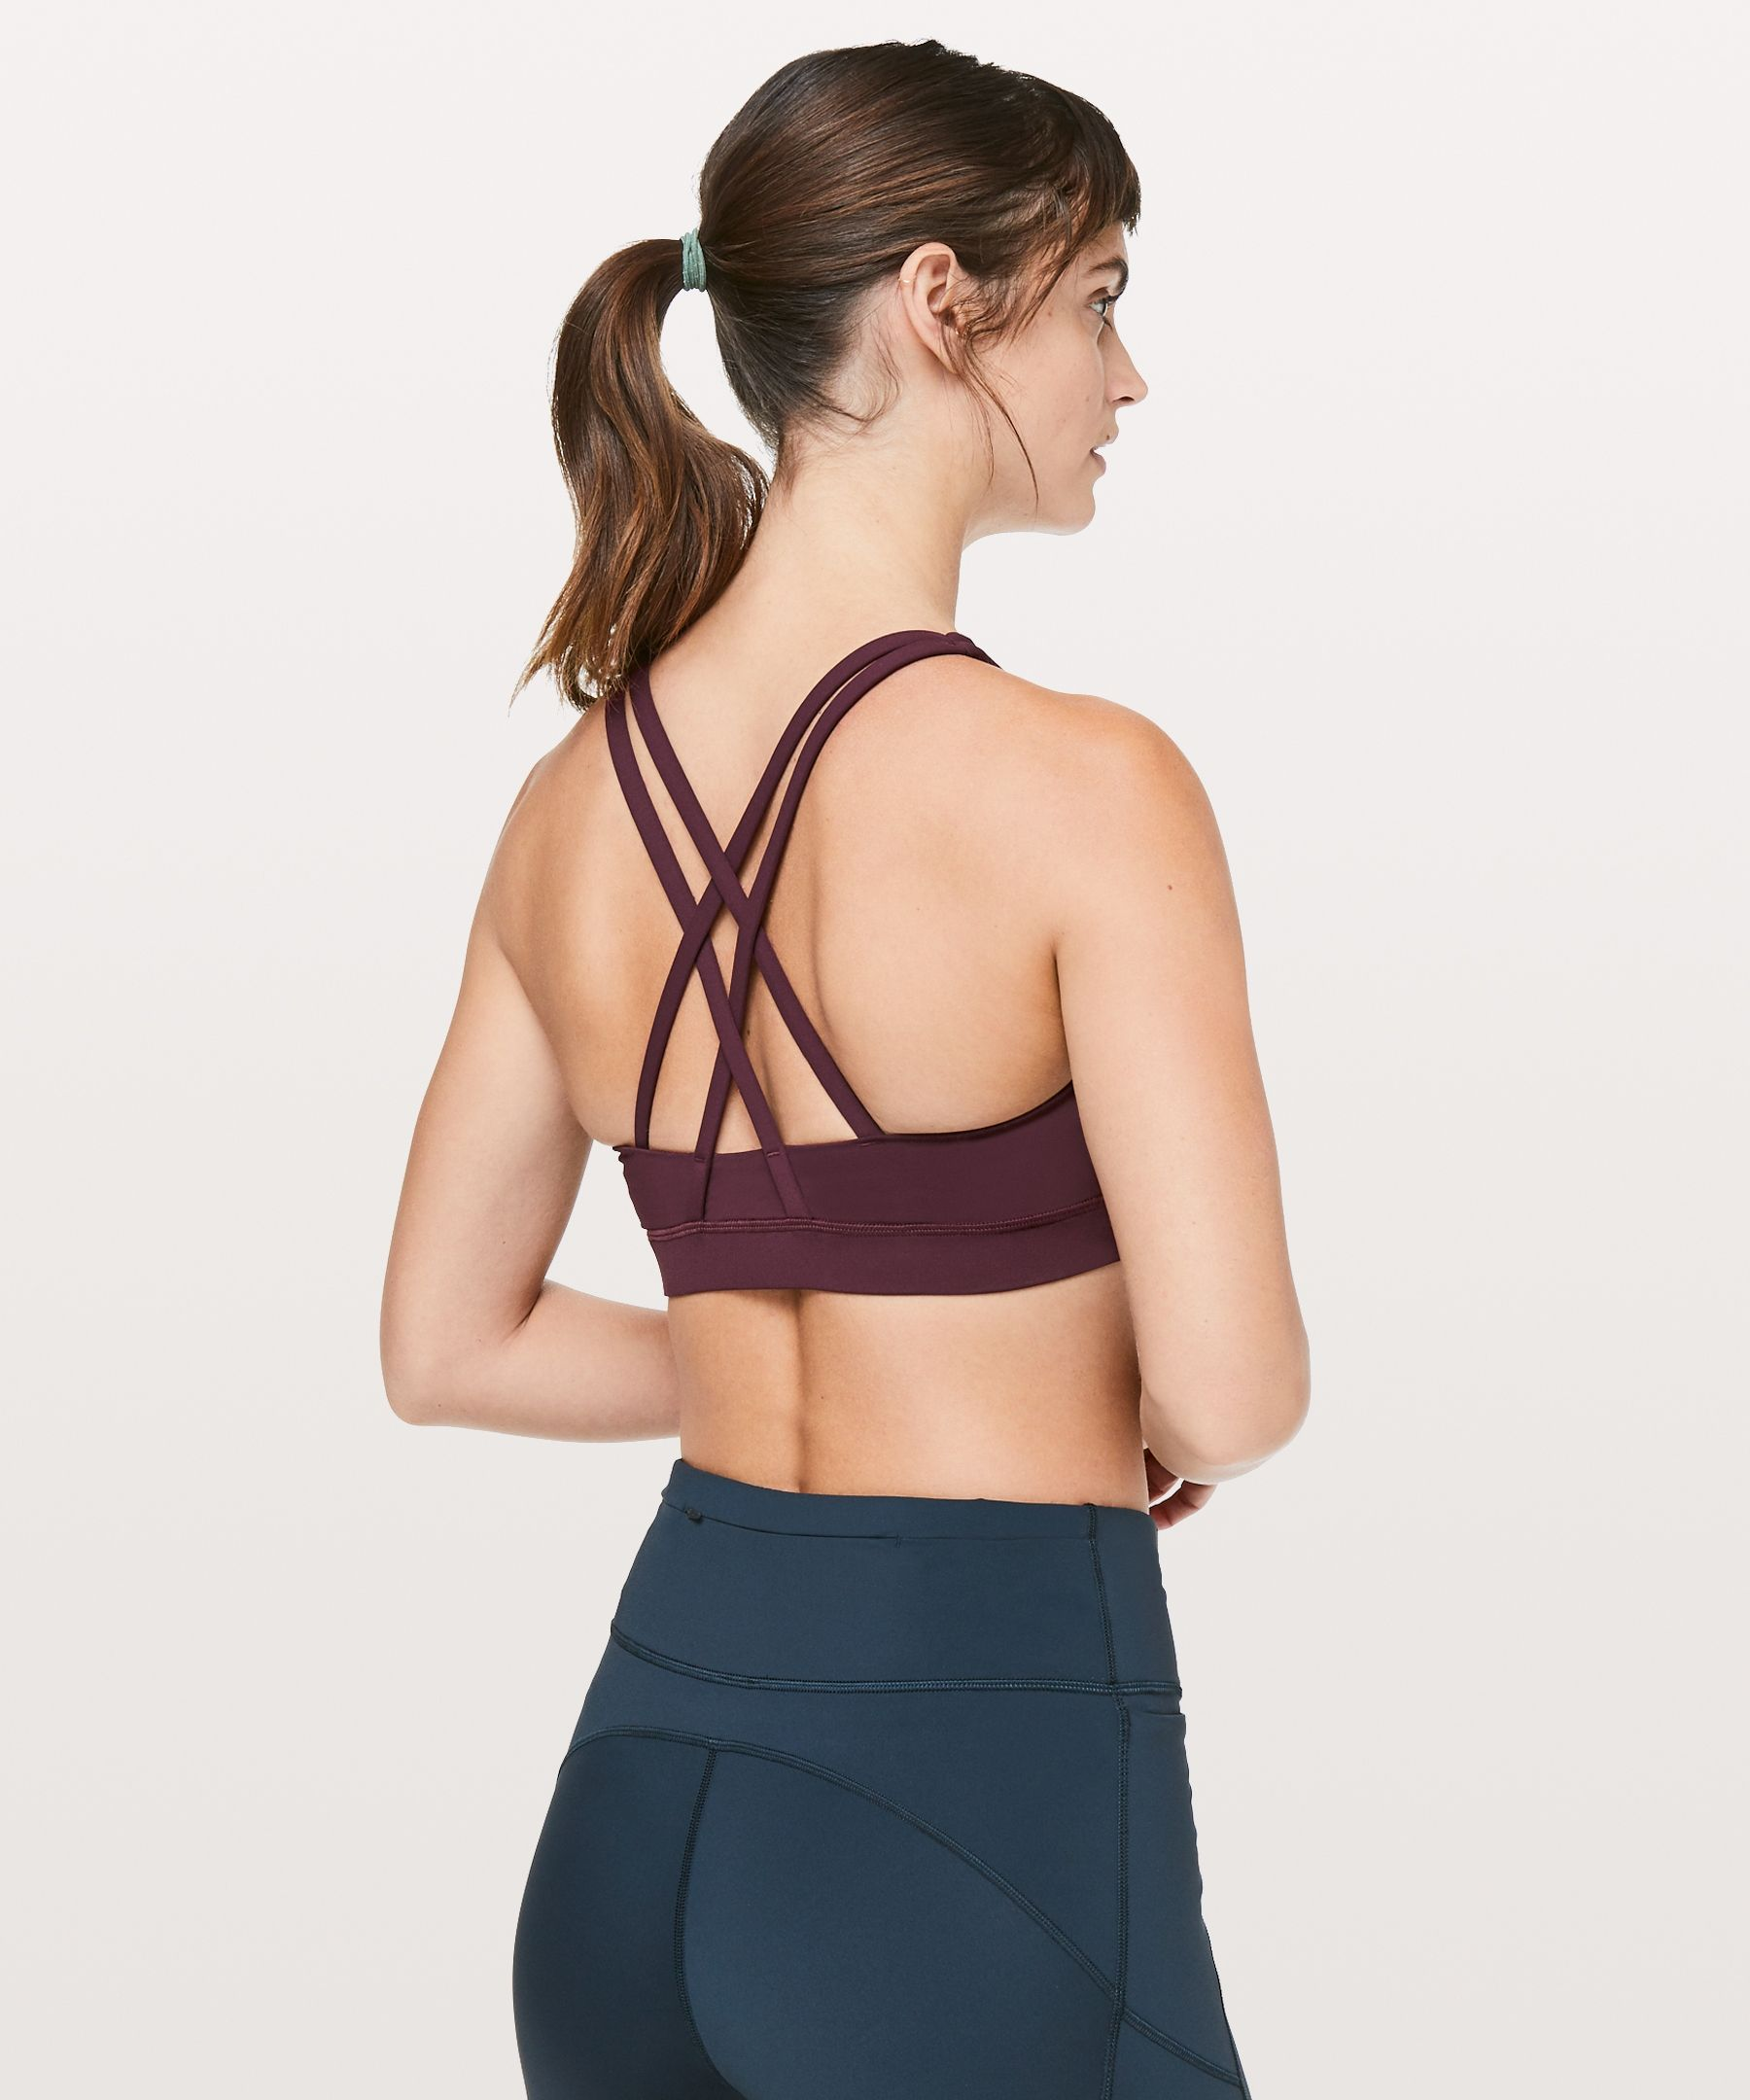 eb26a6ed63f6f Energy Bra - Need a sports bra that does it all  Look no further! This  sweat-wicking cross-strap bra gives you the coverage and support you need  for yoga